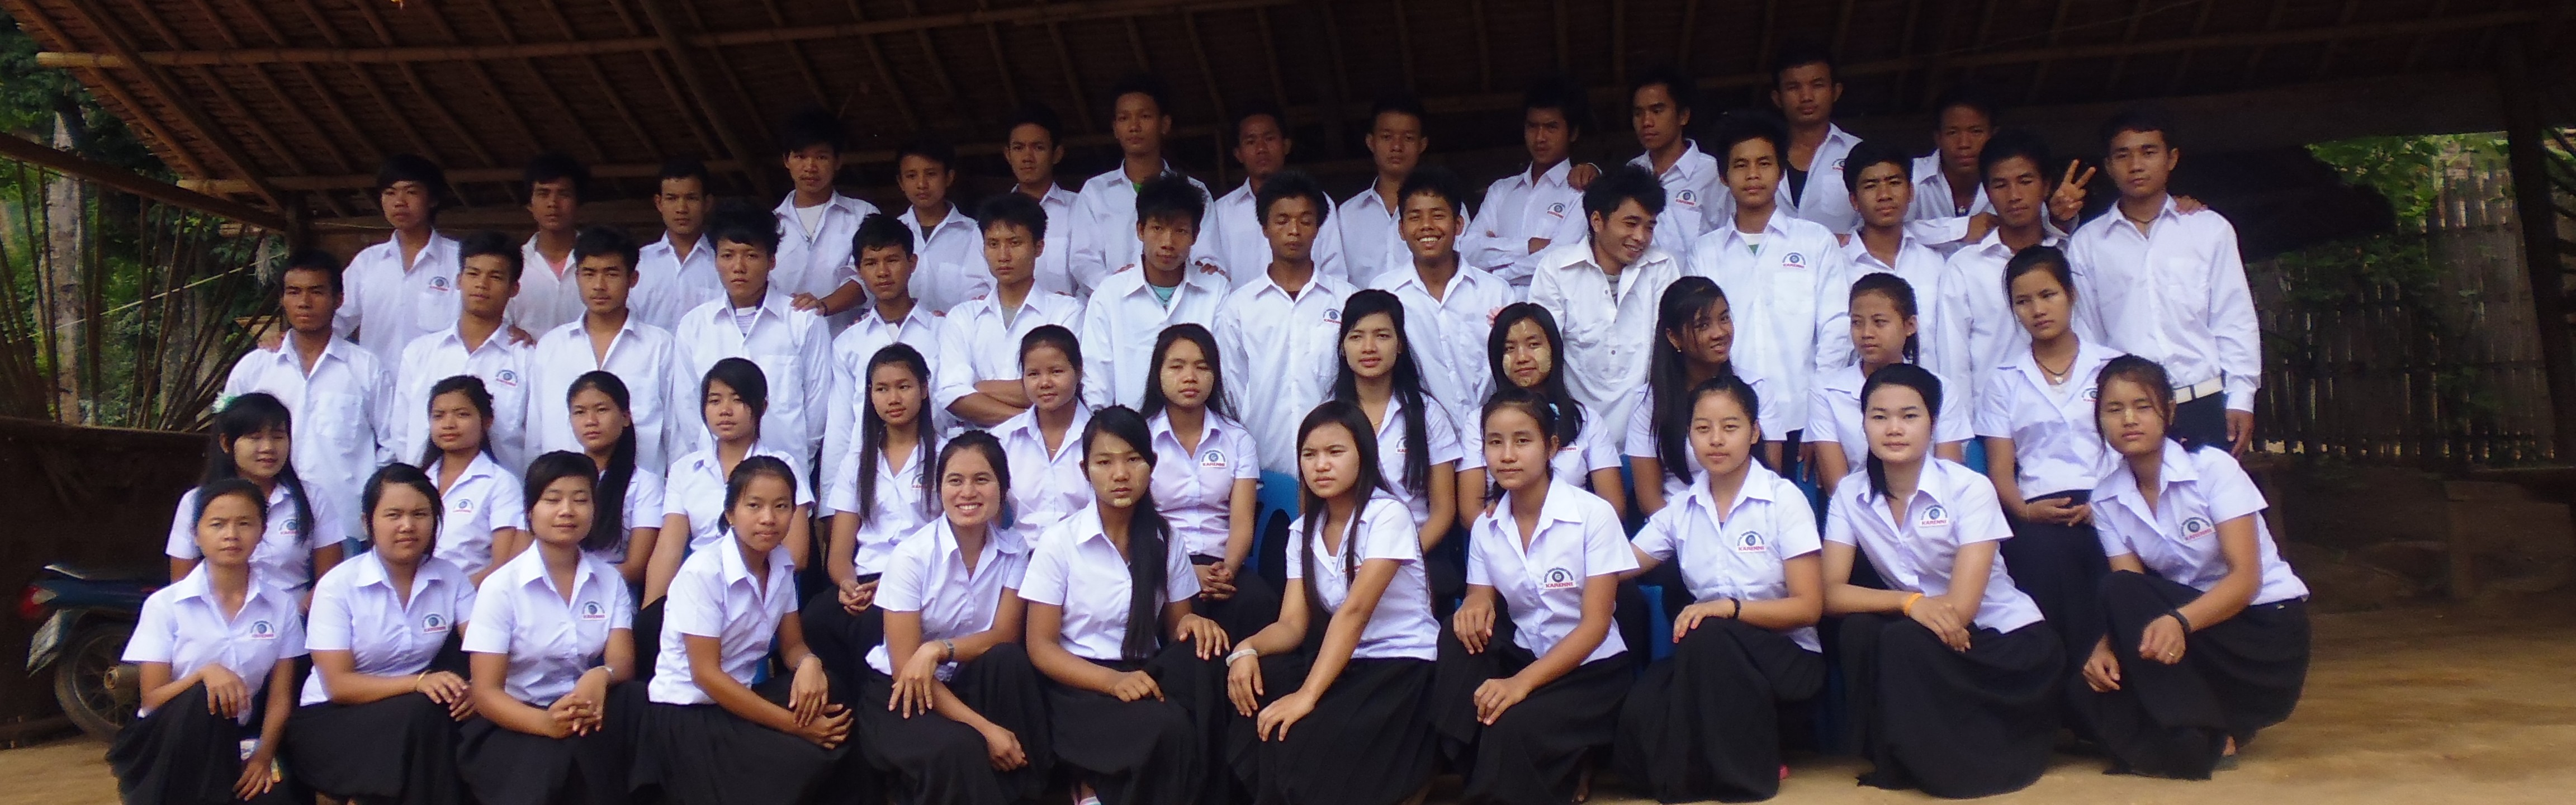 Archived 2014: New Candidates for the Basic Course 2014-5